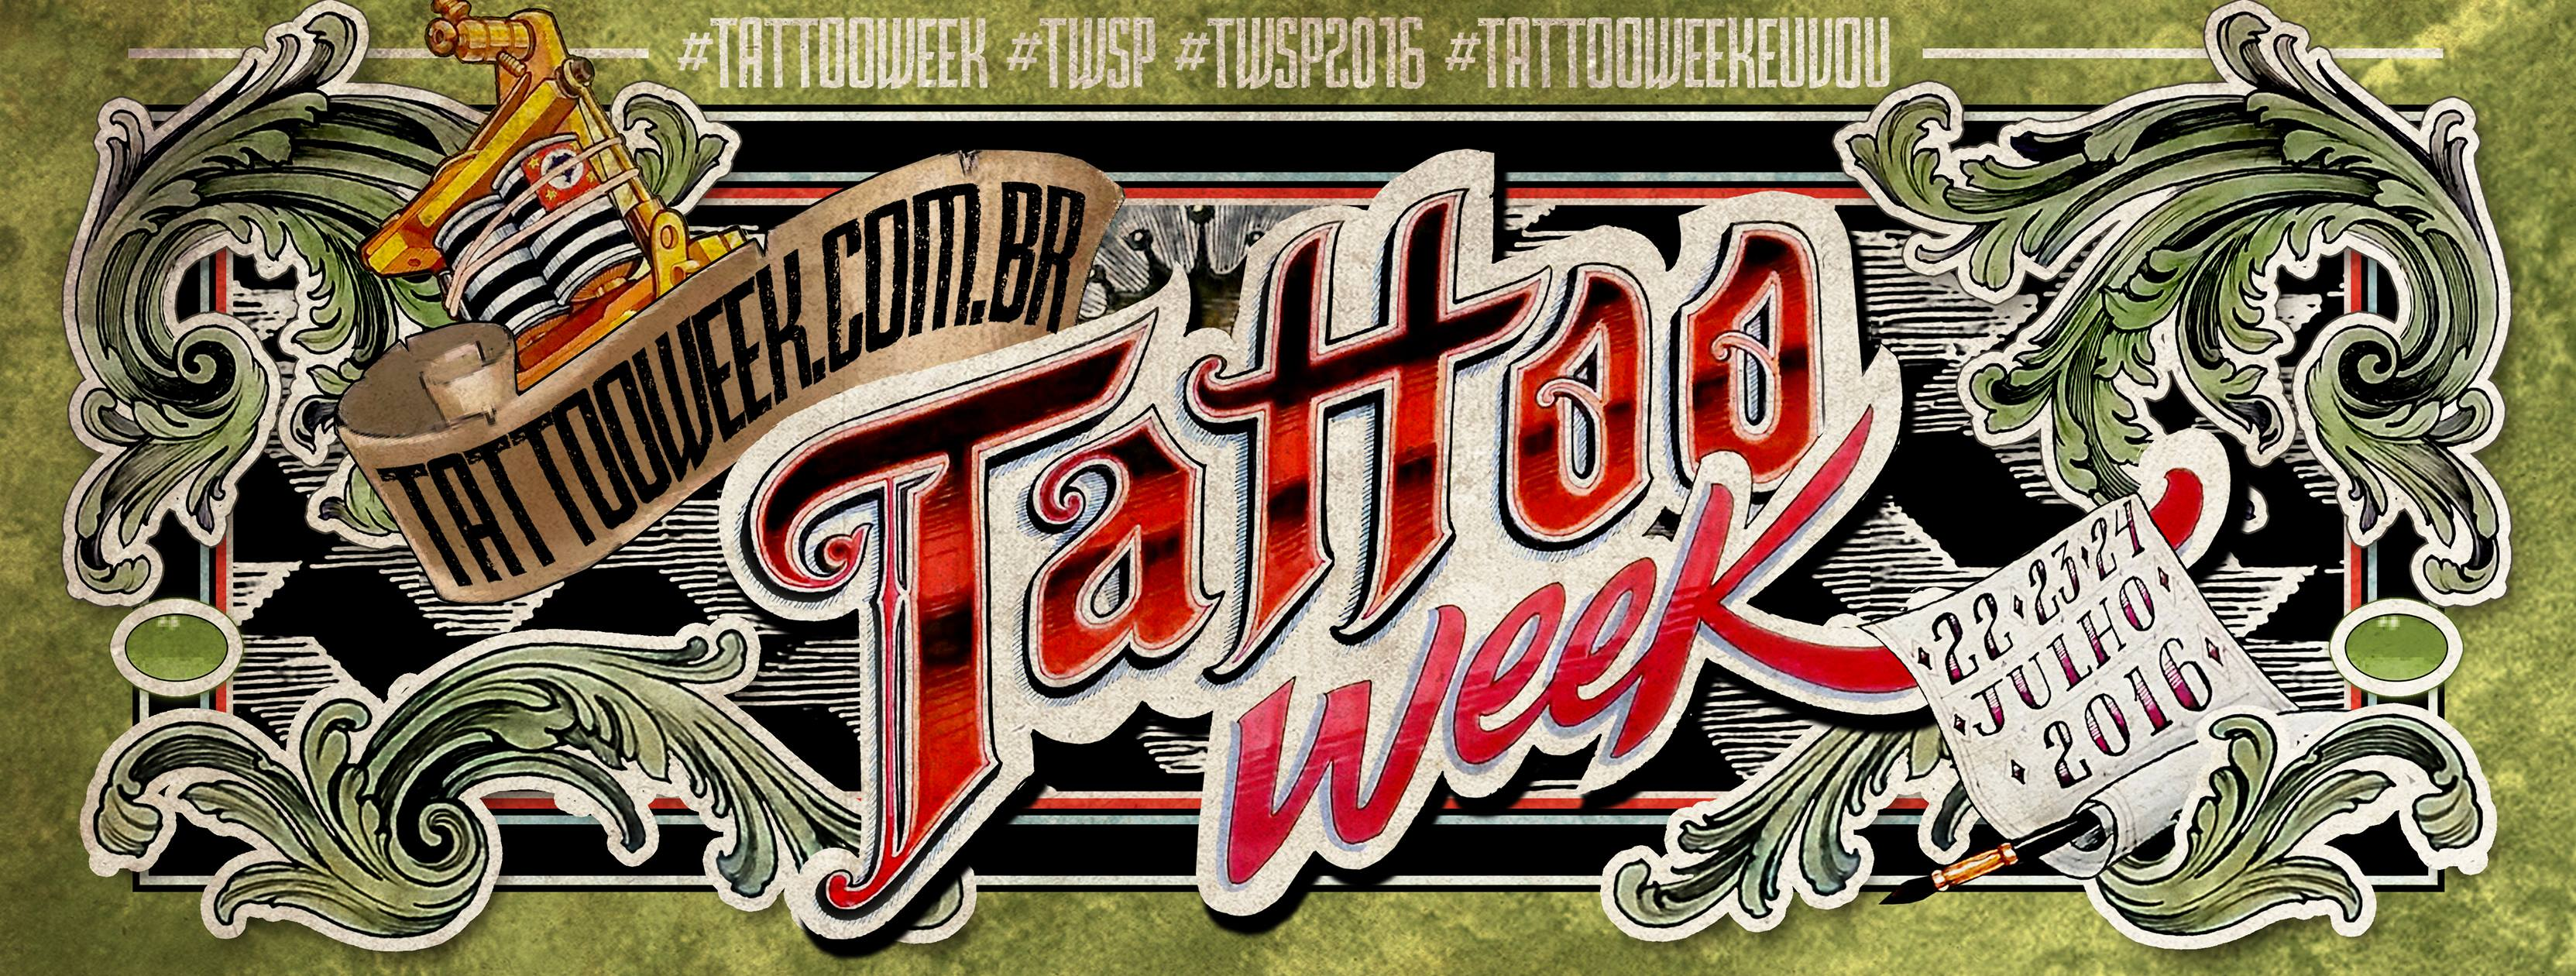 Suicide-Squad-Tattoo Week 2016-1